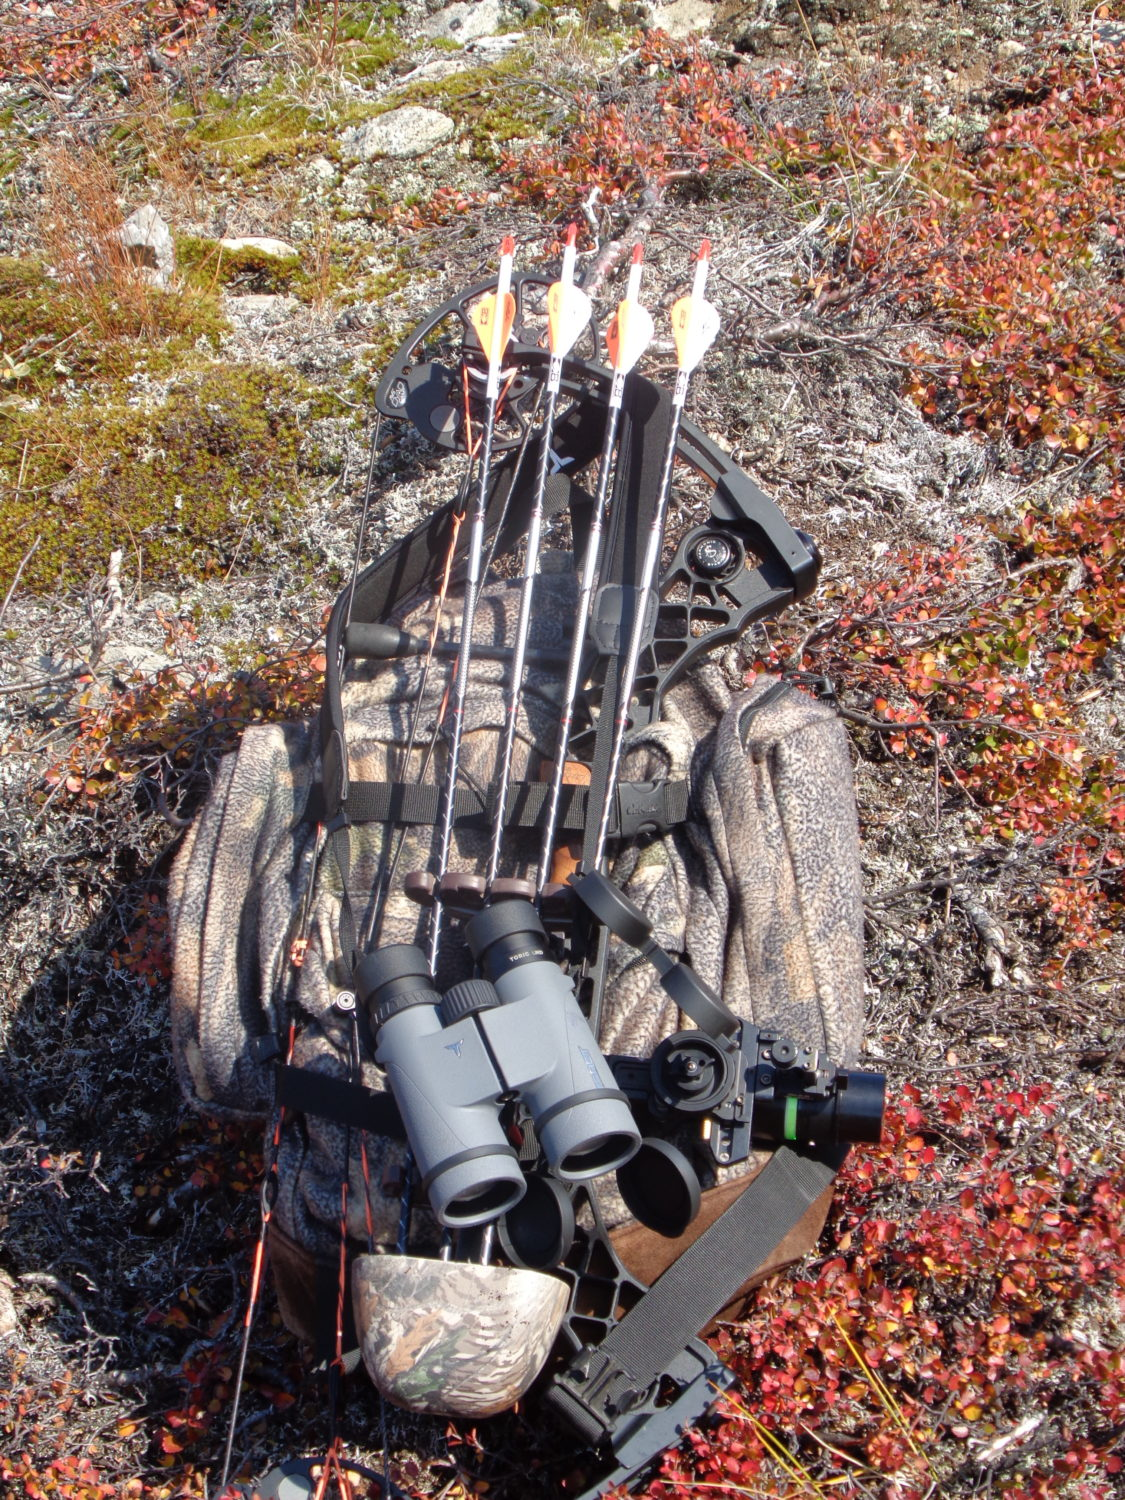 Wasp gear for Greenland hunt